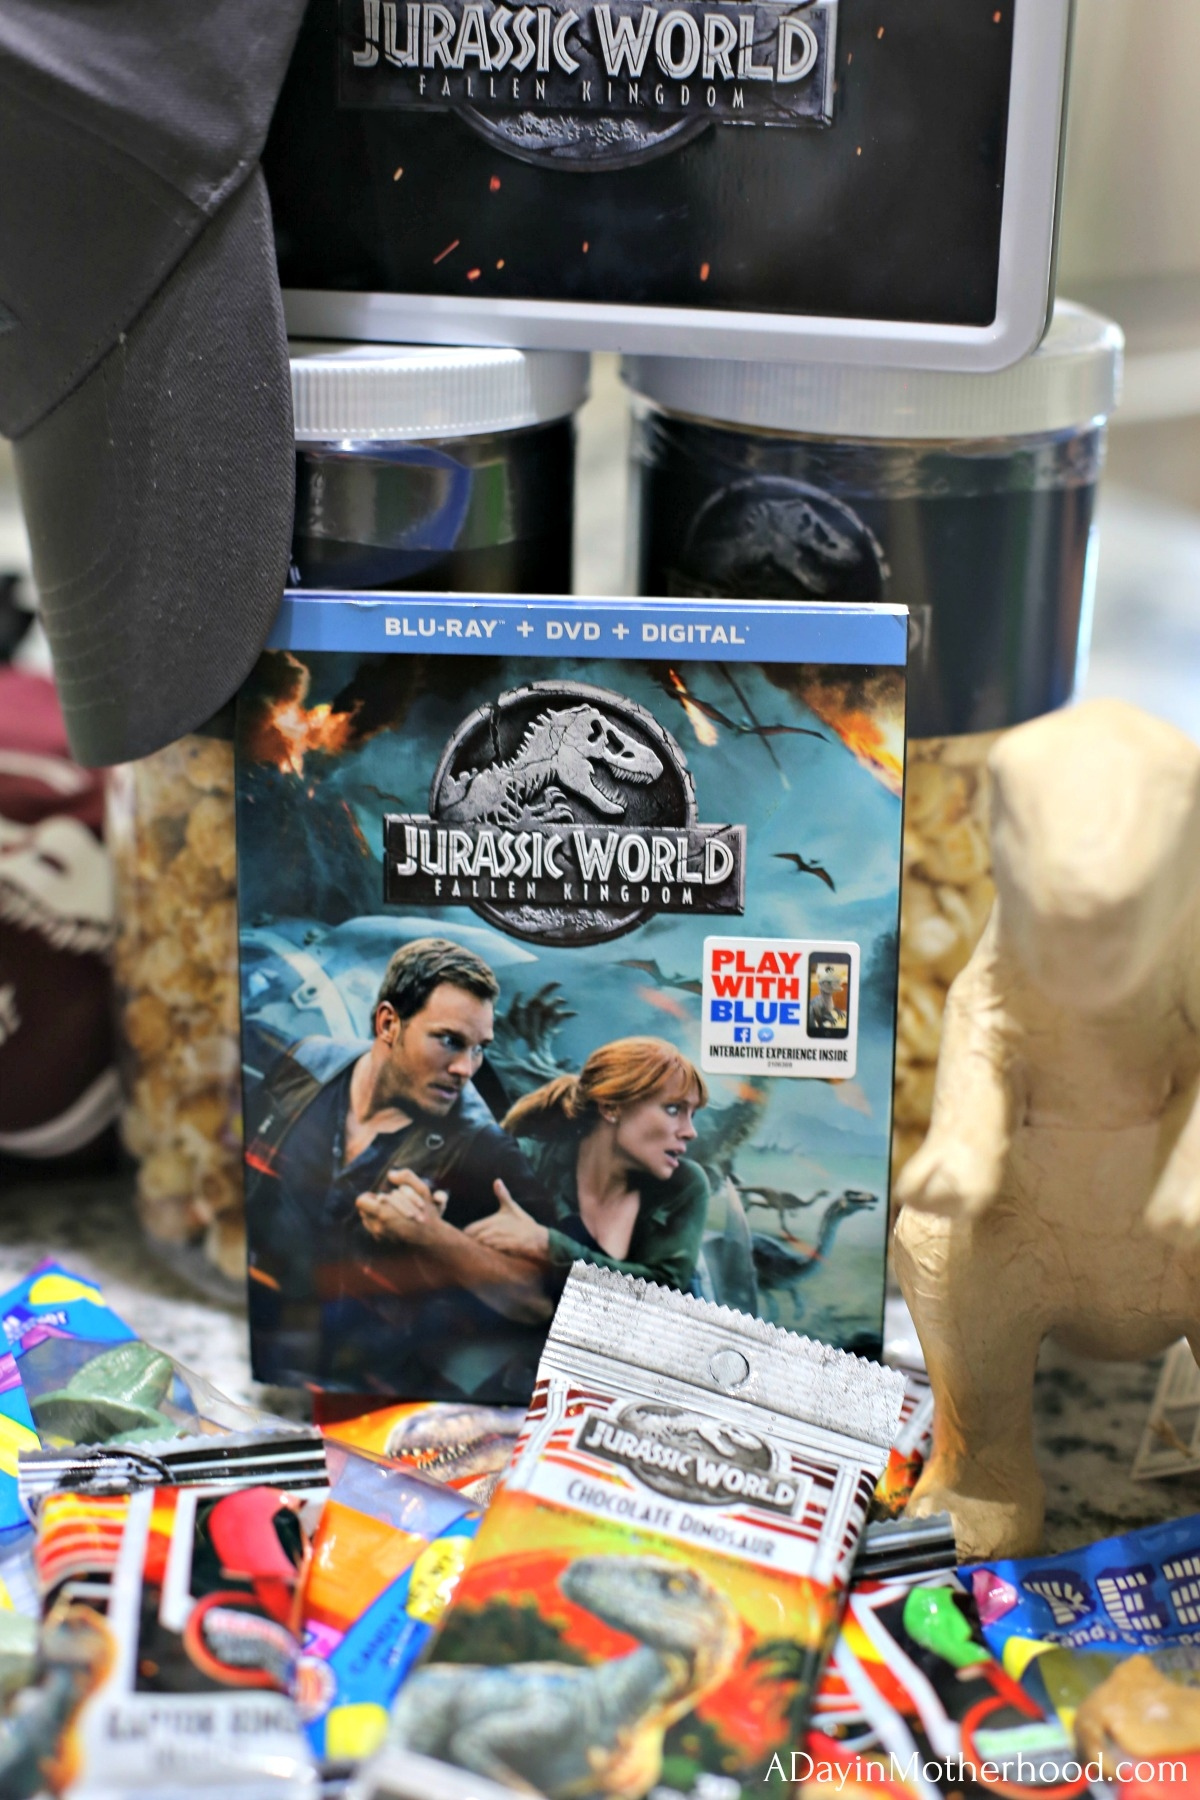 JURASSIC WORLD: FALLEN KINGDOM Easy Movie Night Ideas